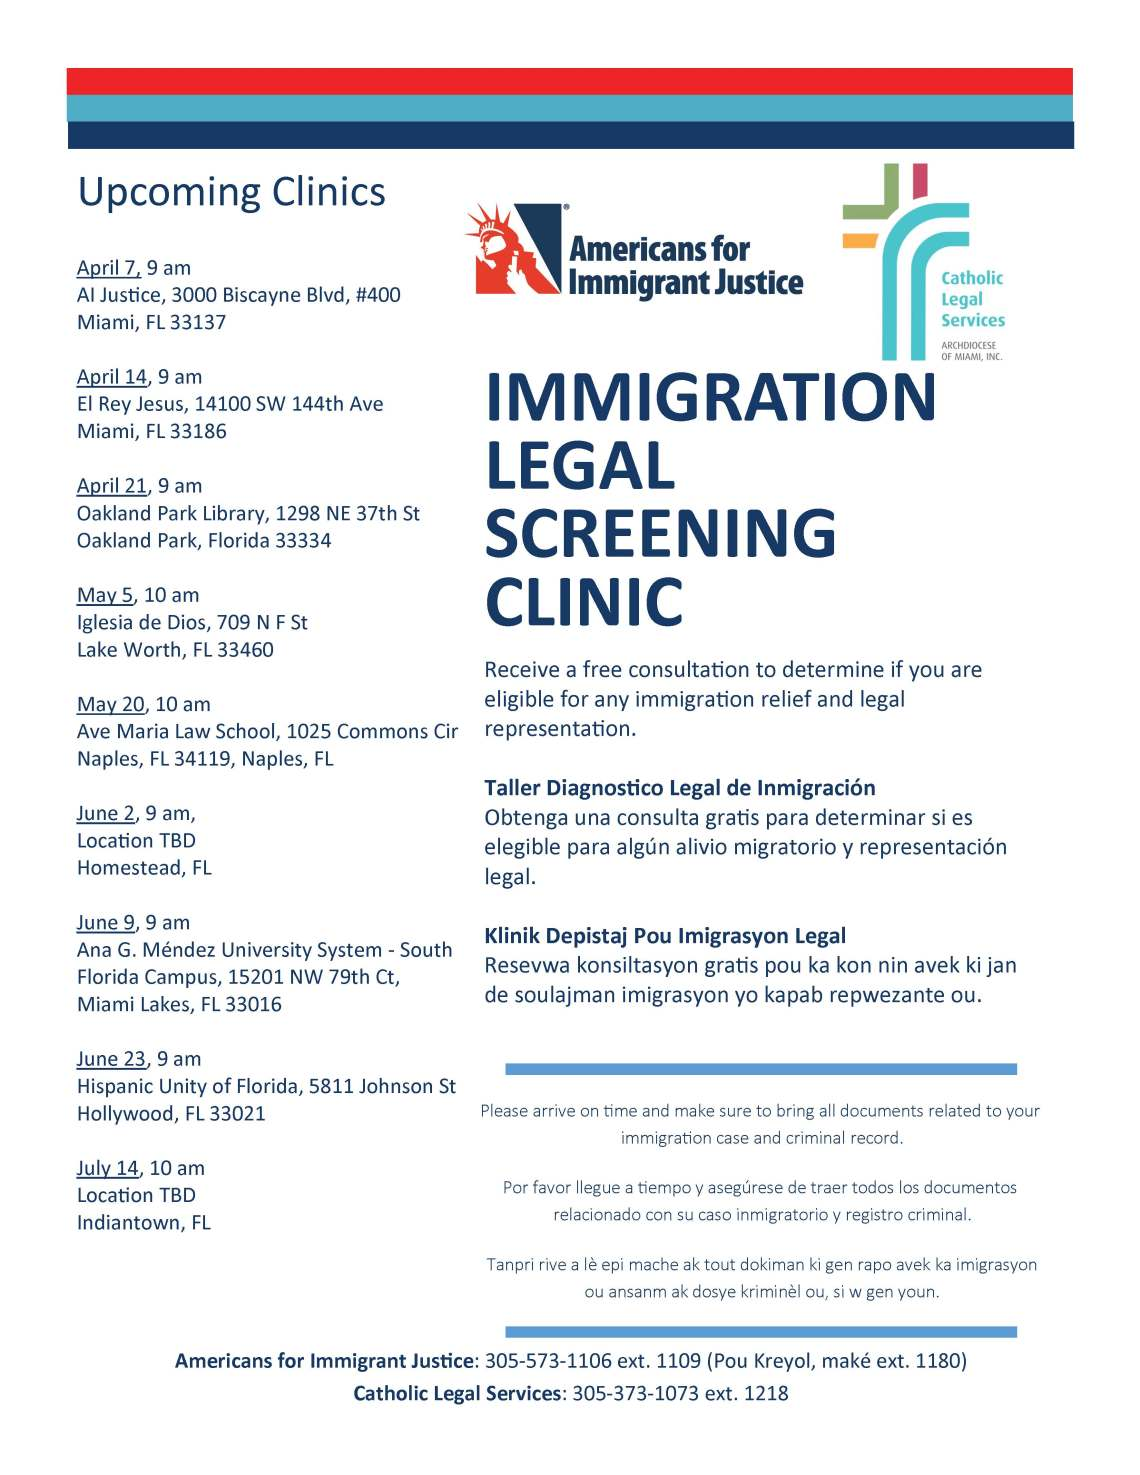 Clinic Flyer (upcoming events thru July 2018)